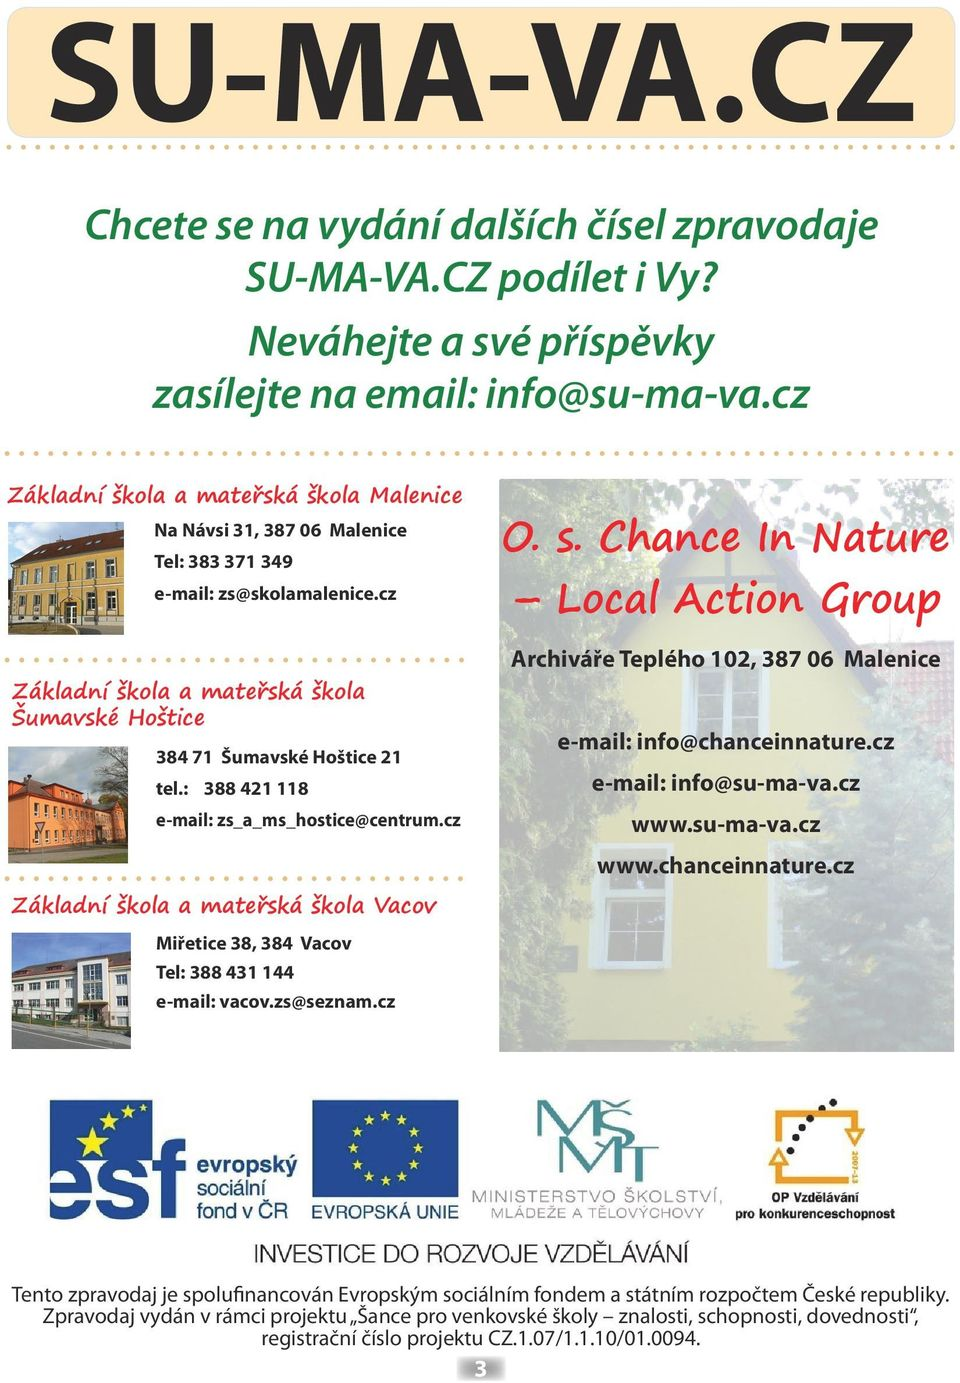 : 388 421 118 e-mail: zs_a_ms_hostice@centrum.cz O. s. Chance In Nature Local Action Group Archiváře Teplého 102, 387 06 Malenice e-mail: info@chanceinnature.cz e-mail: info@su-ma-va.cz www.